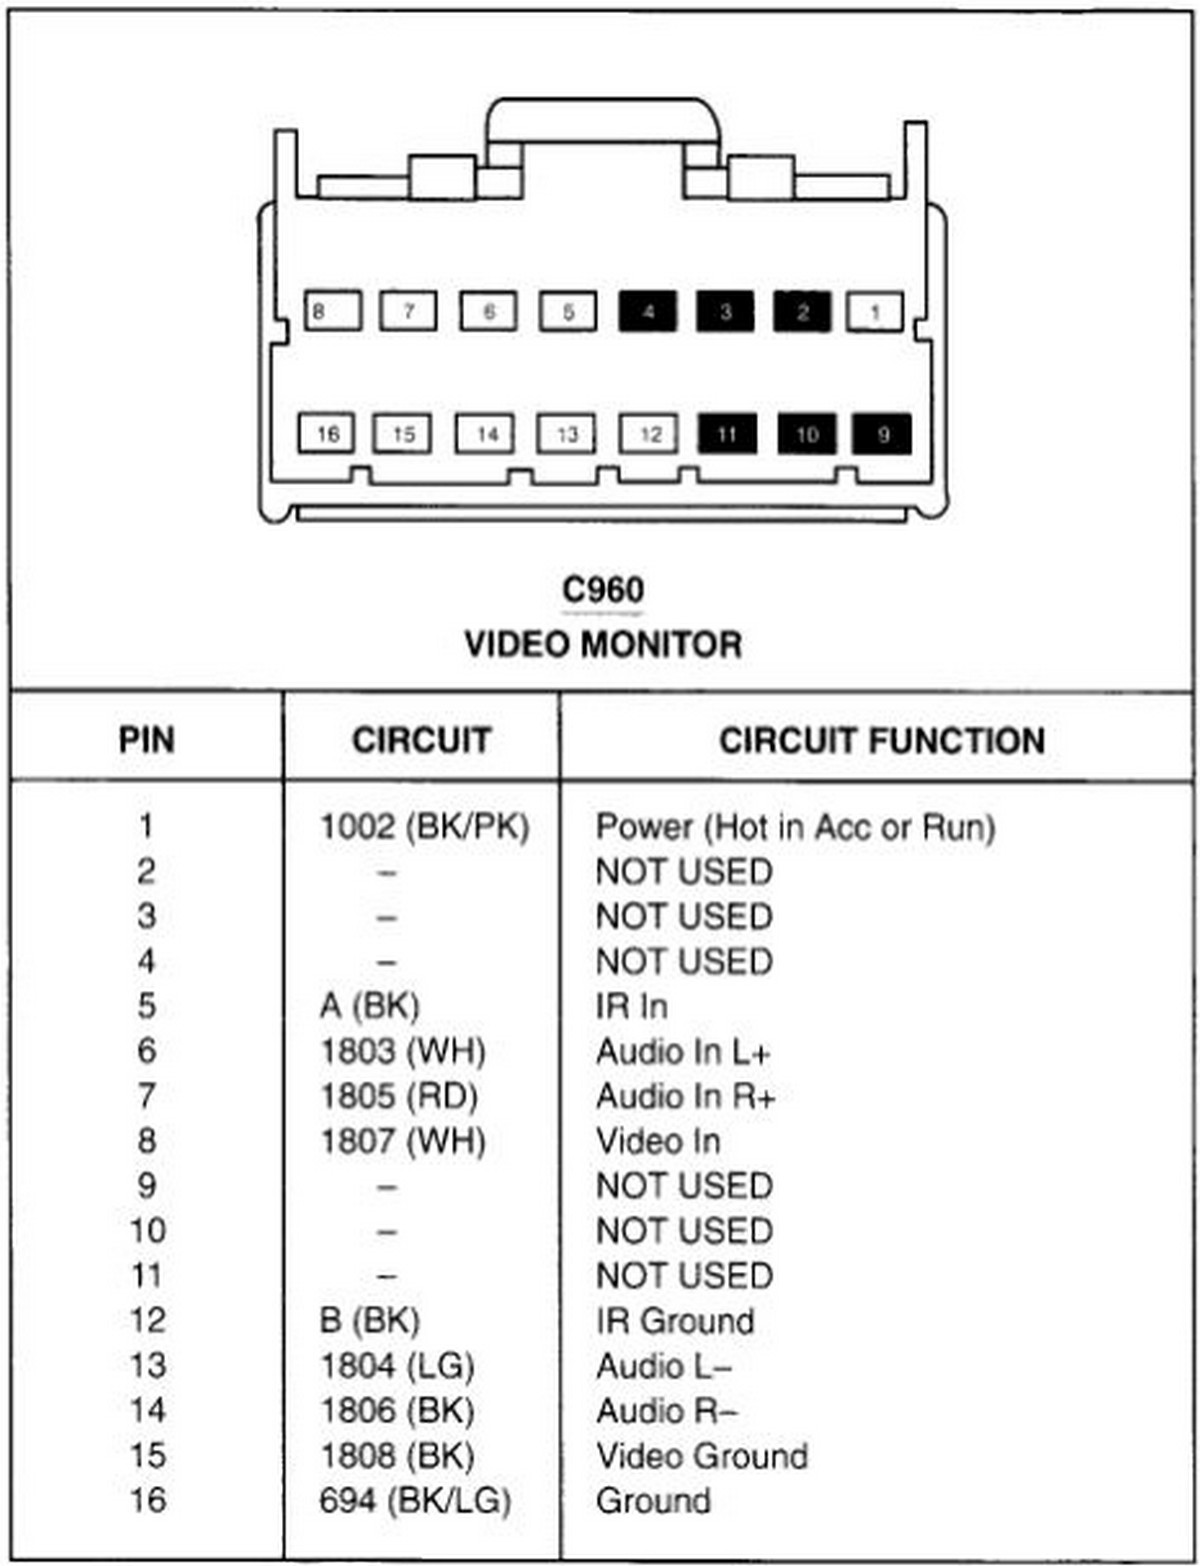 2001 ford f150 stereo wiring diagram arc fault breaker car radio audio autoradio